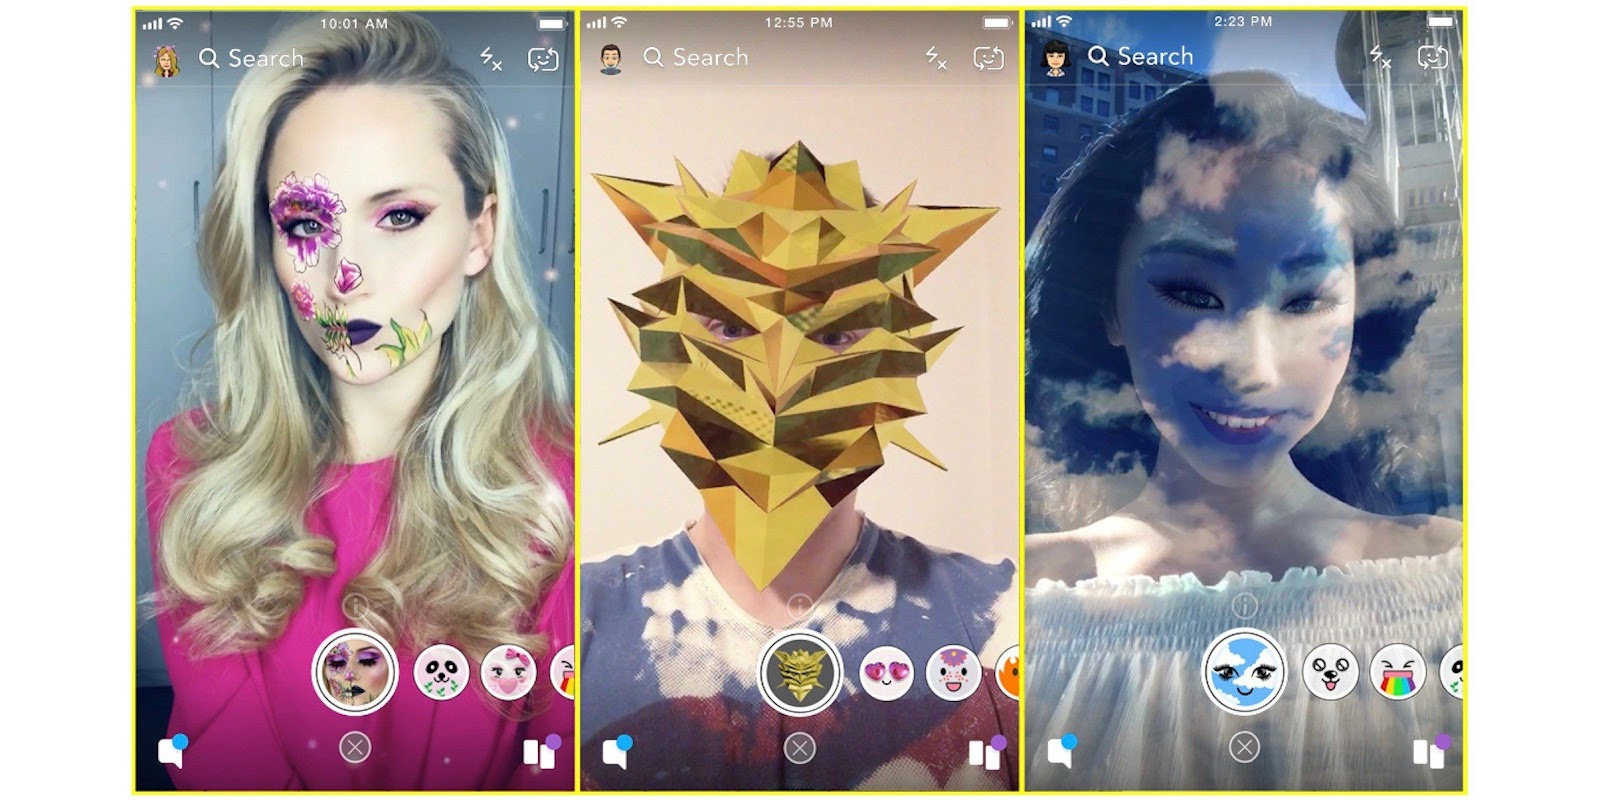 how to create an app like Snapchat with lenses